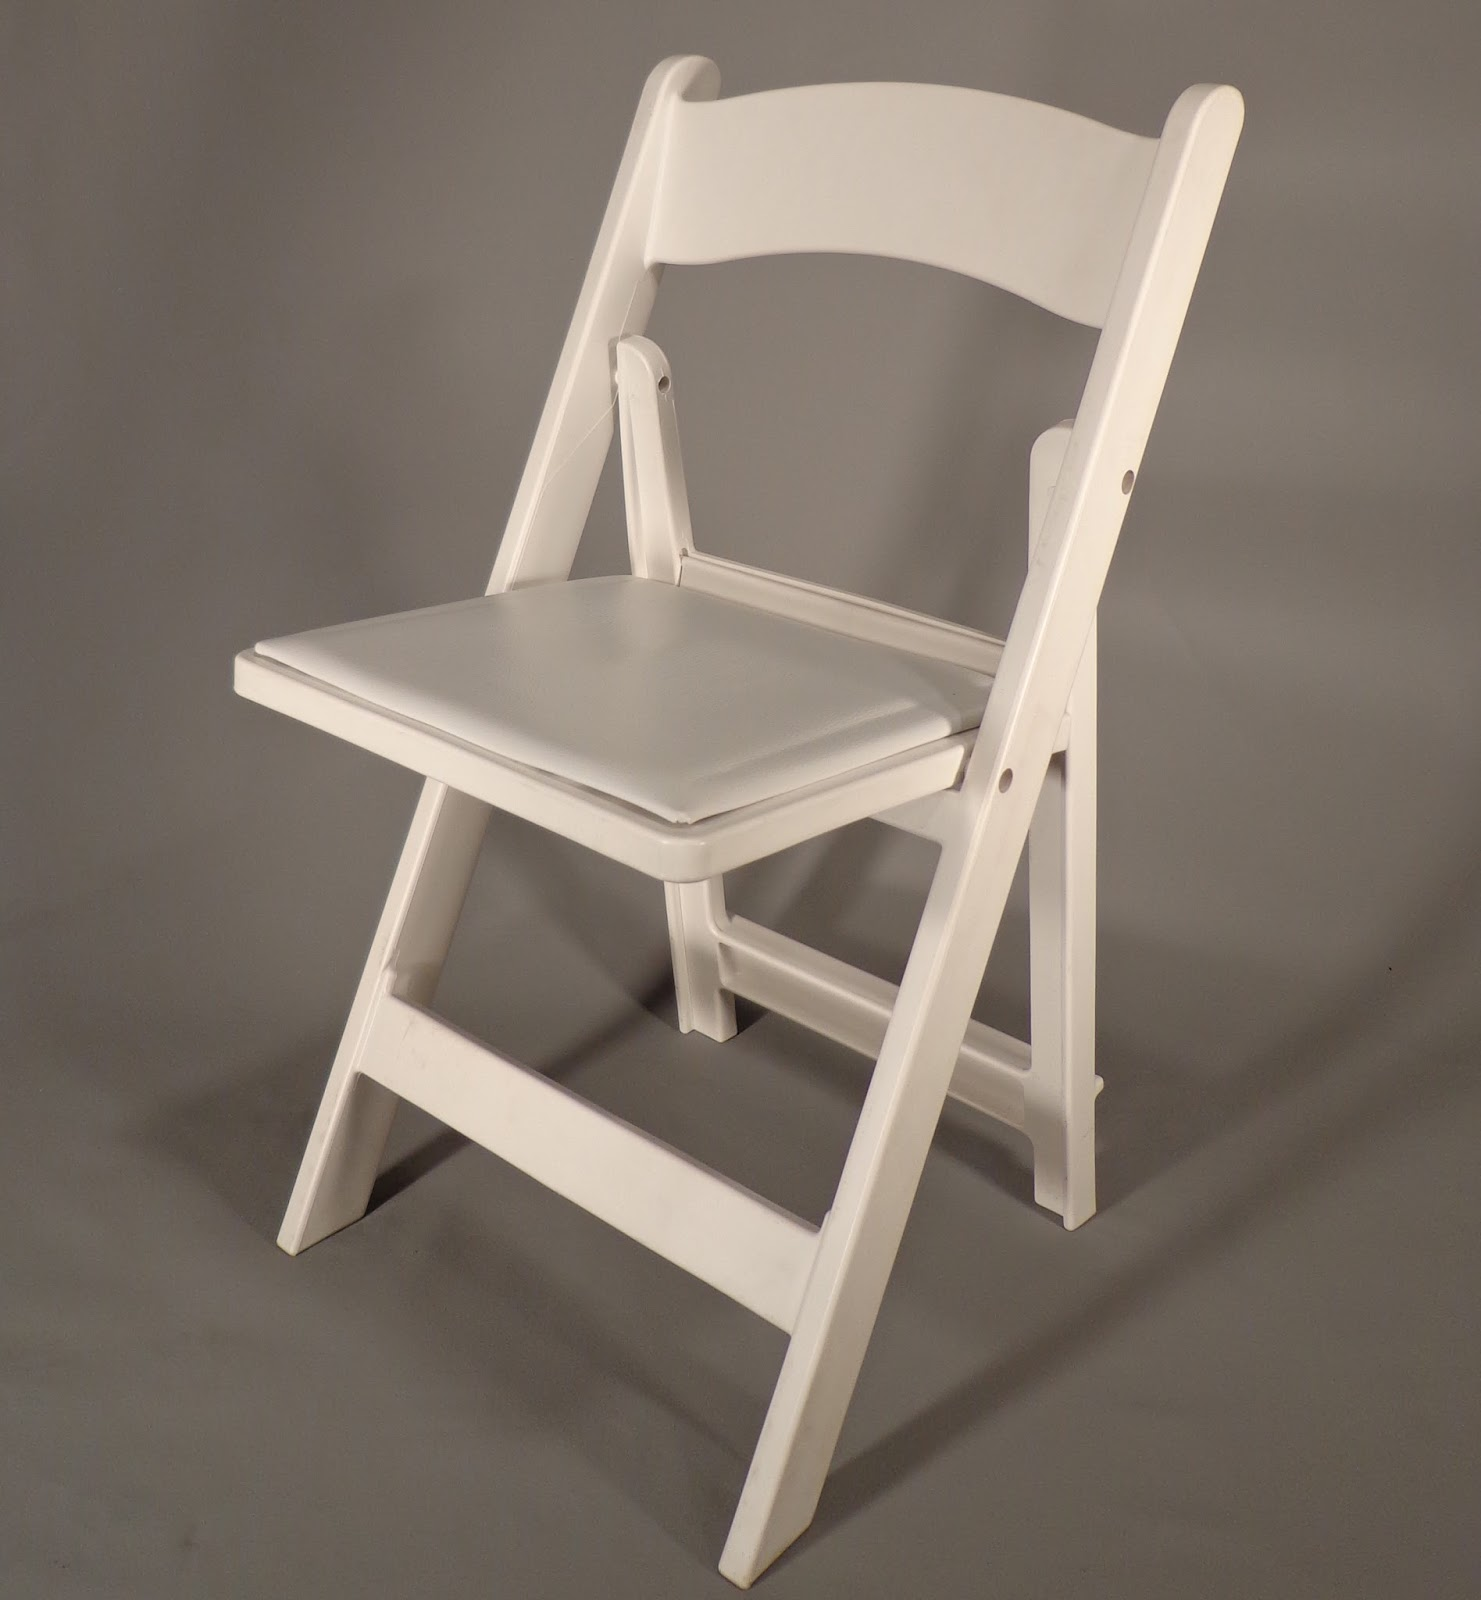 Chair Rentals Tampa Best Rates On Party Rentals Chairs Dmv Party Rental In